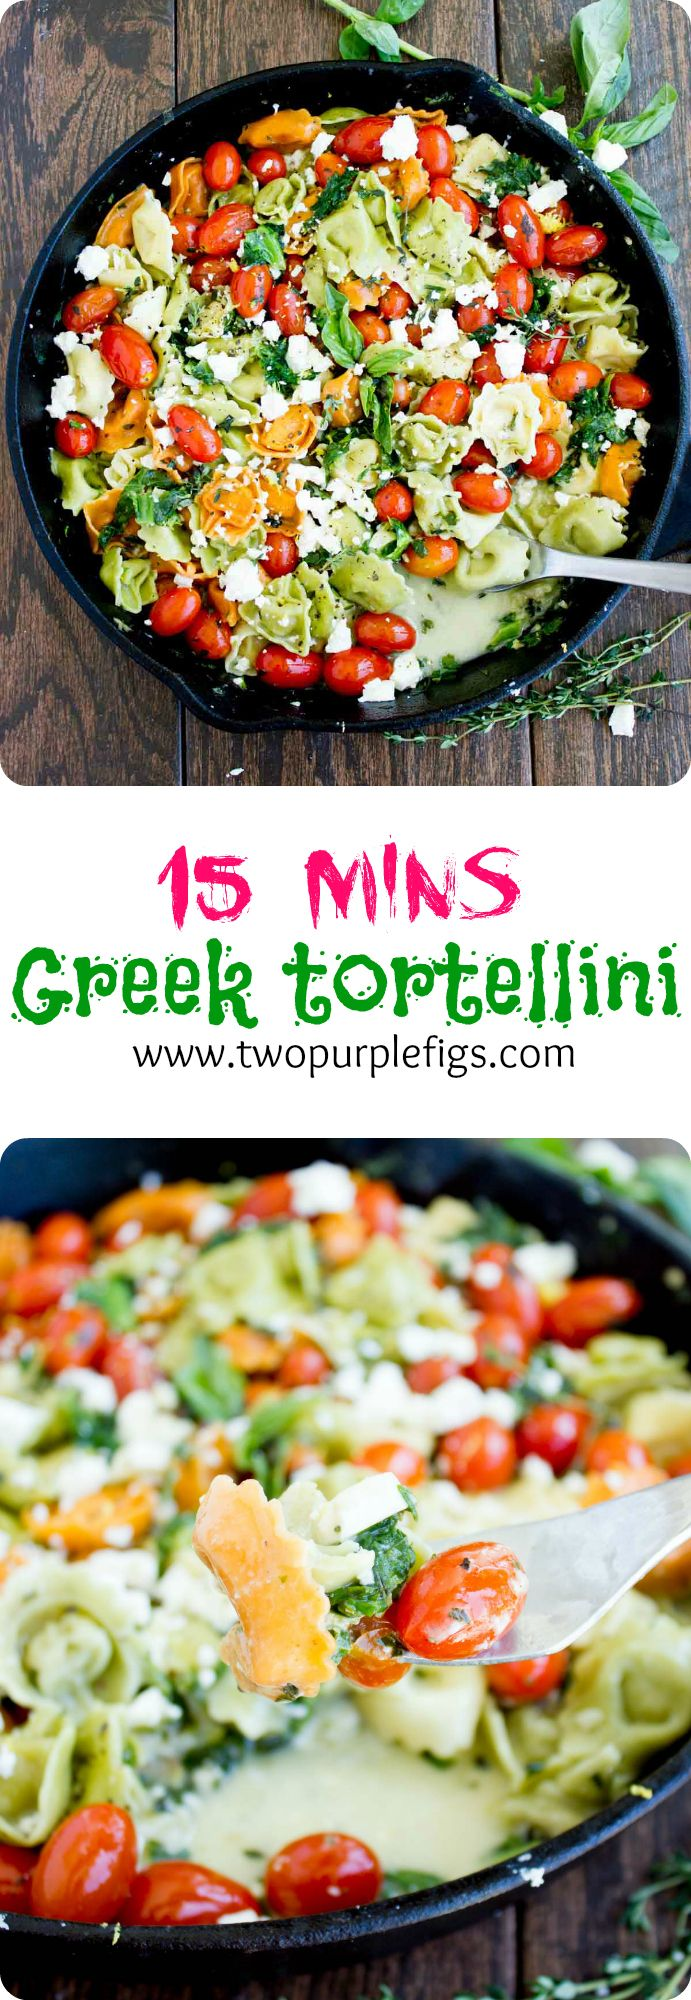 10 Minute Greek Cheese Tortellini recipe is a perfect LAST MINUTE zesty pasta that screams comfort. Delicious, simple and fresh--We LOVE Greek! www.twopurplefigs.com